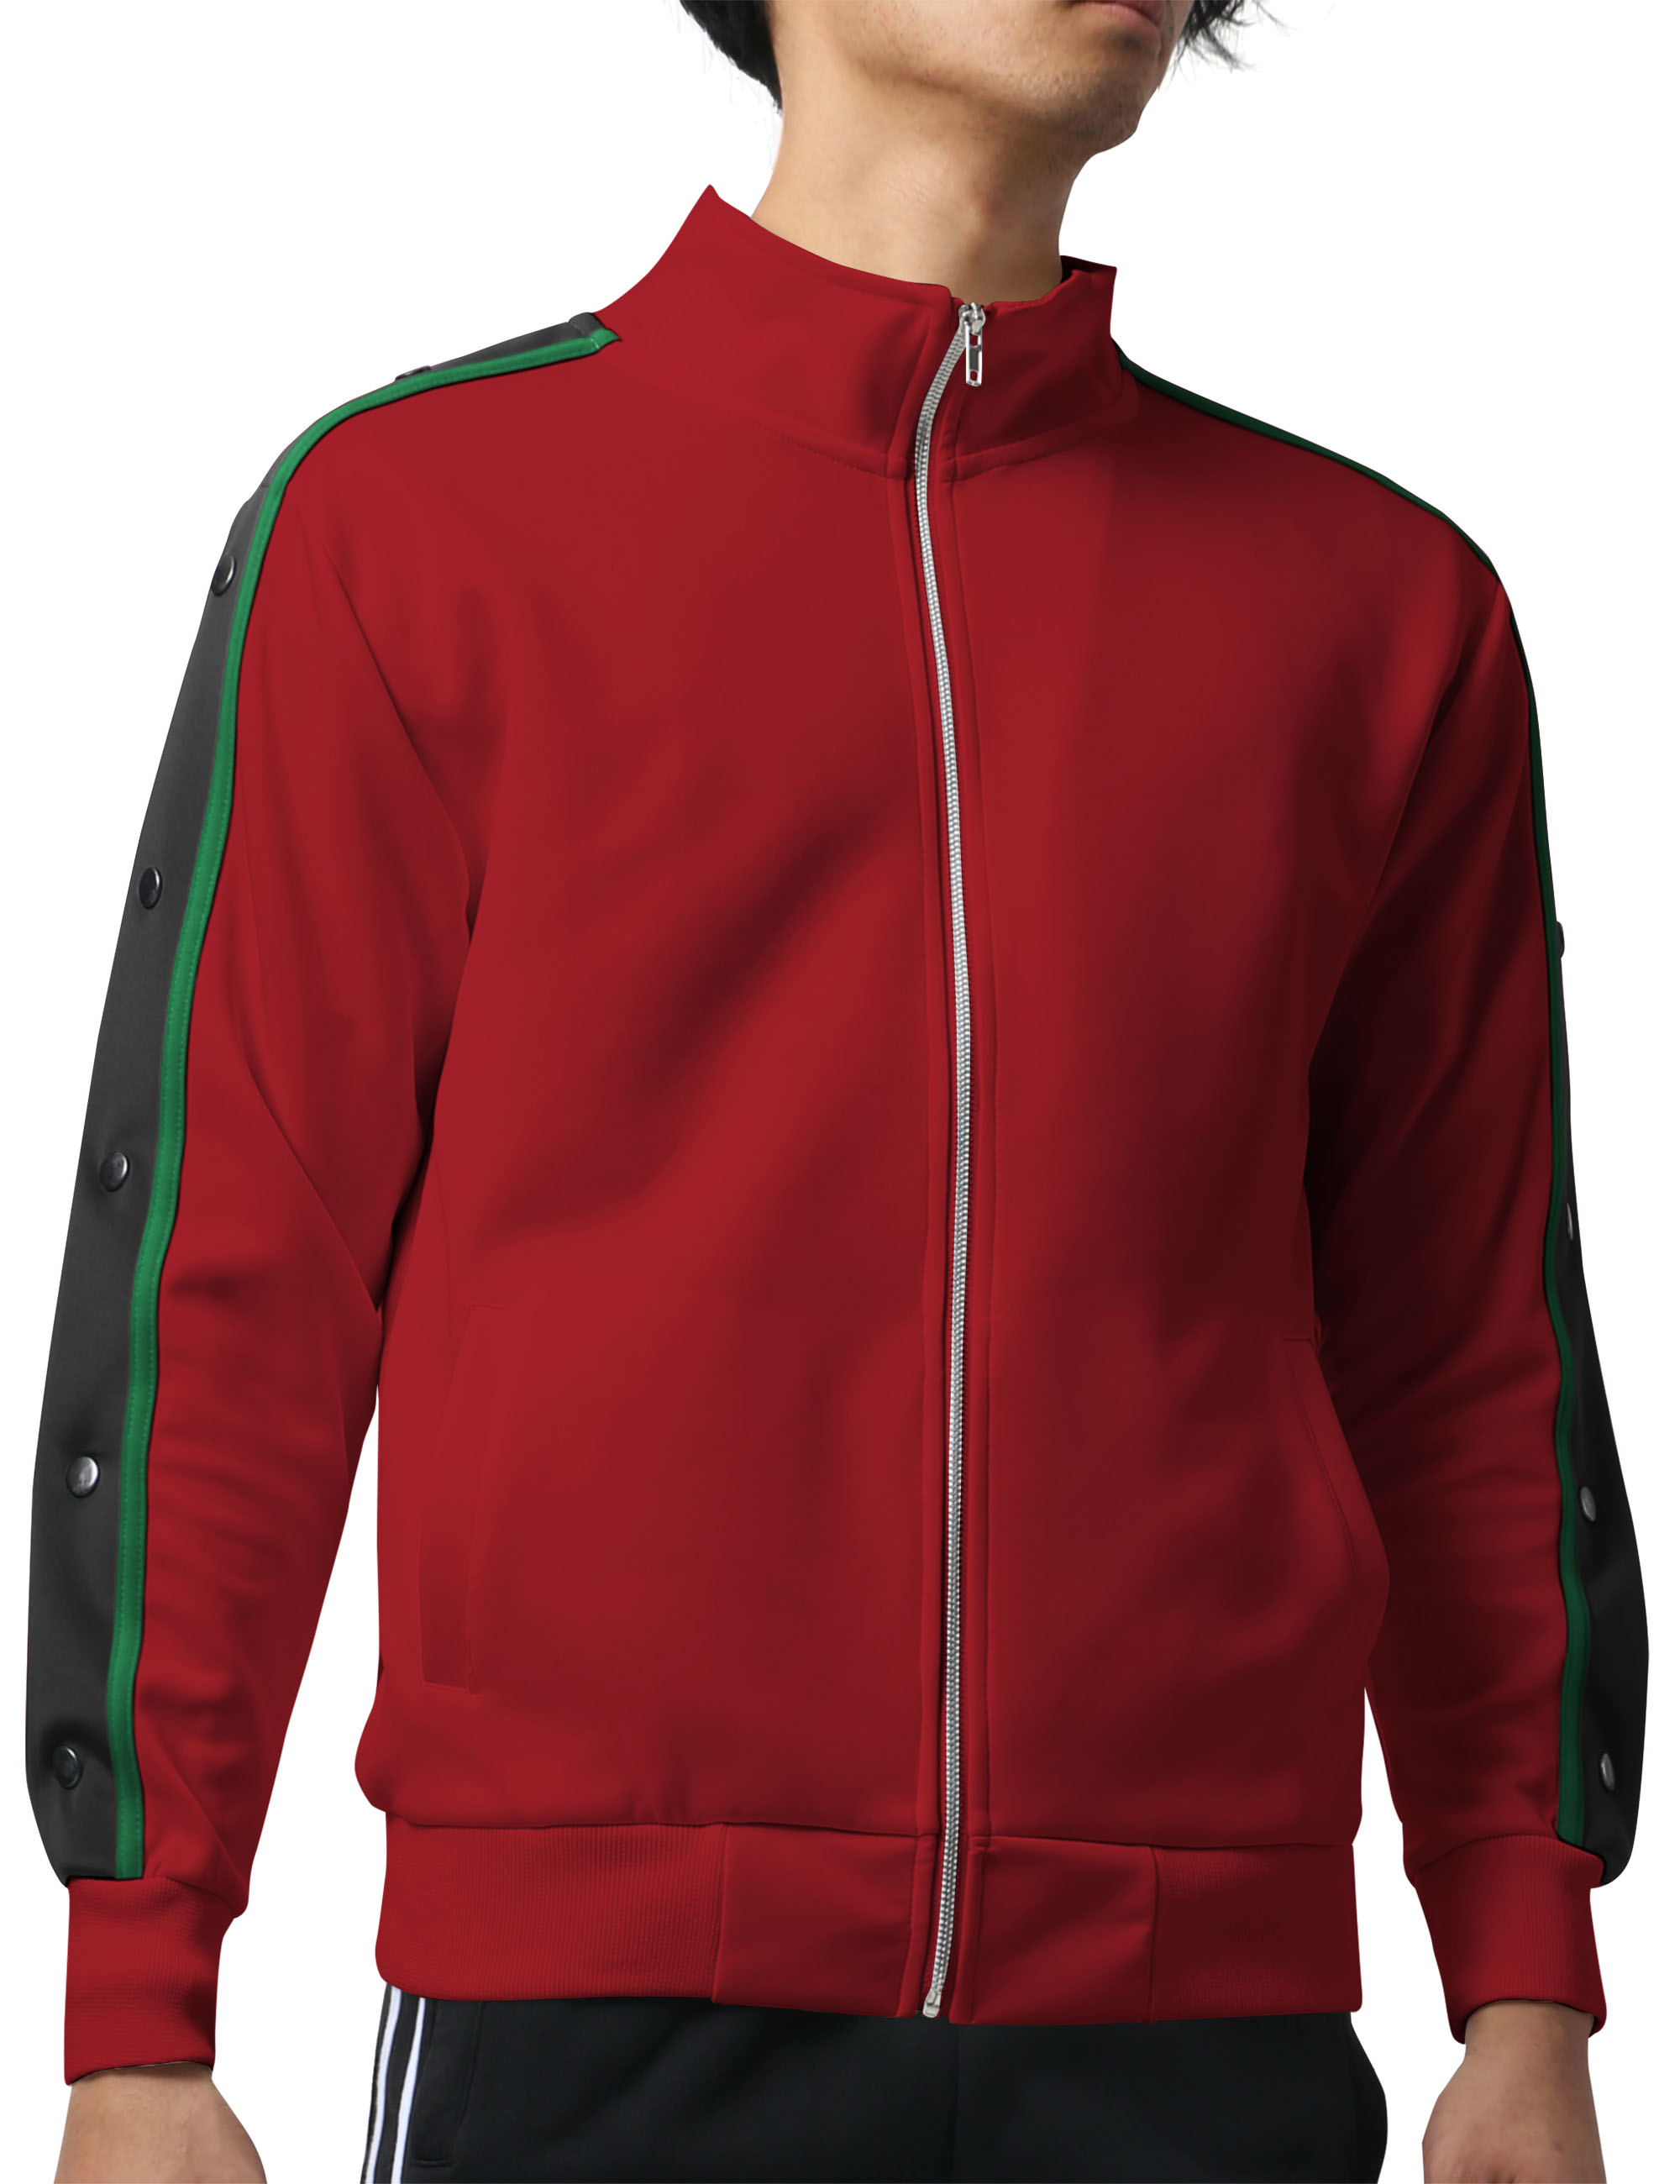 Men's Active Slim Fit Track Jacket with Button Sleeve Accents